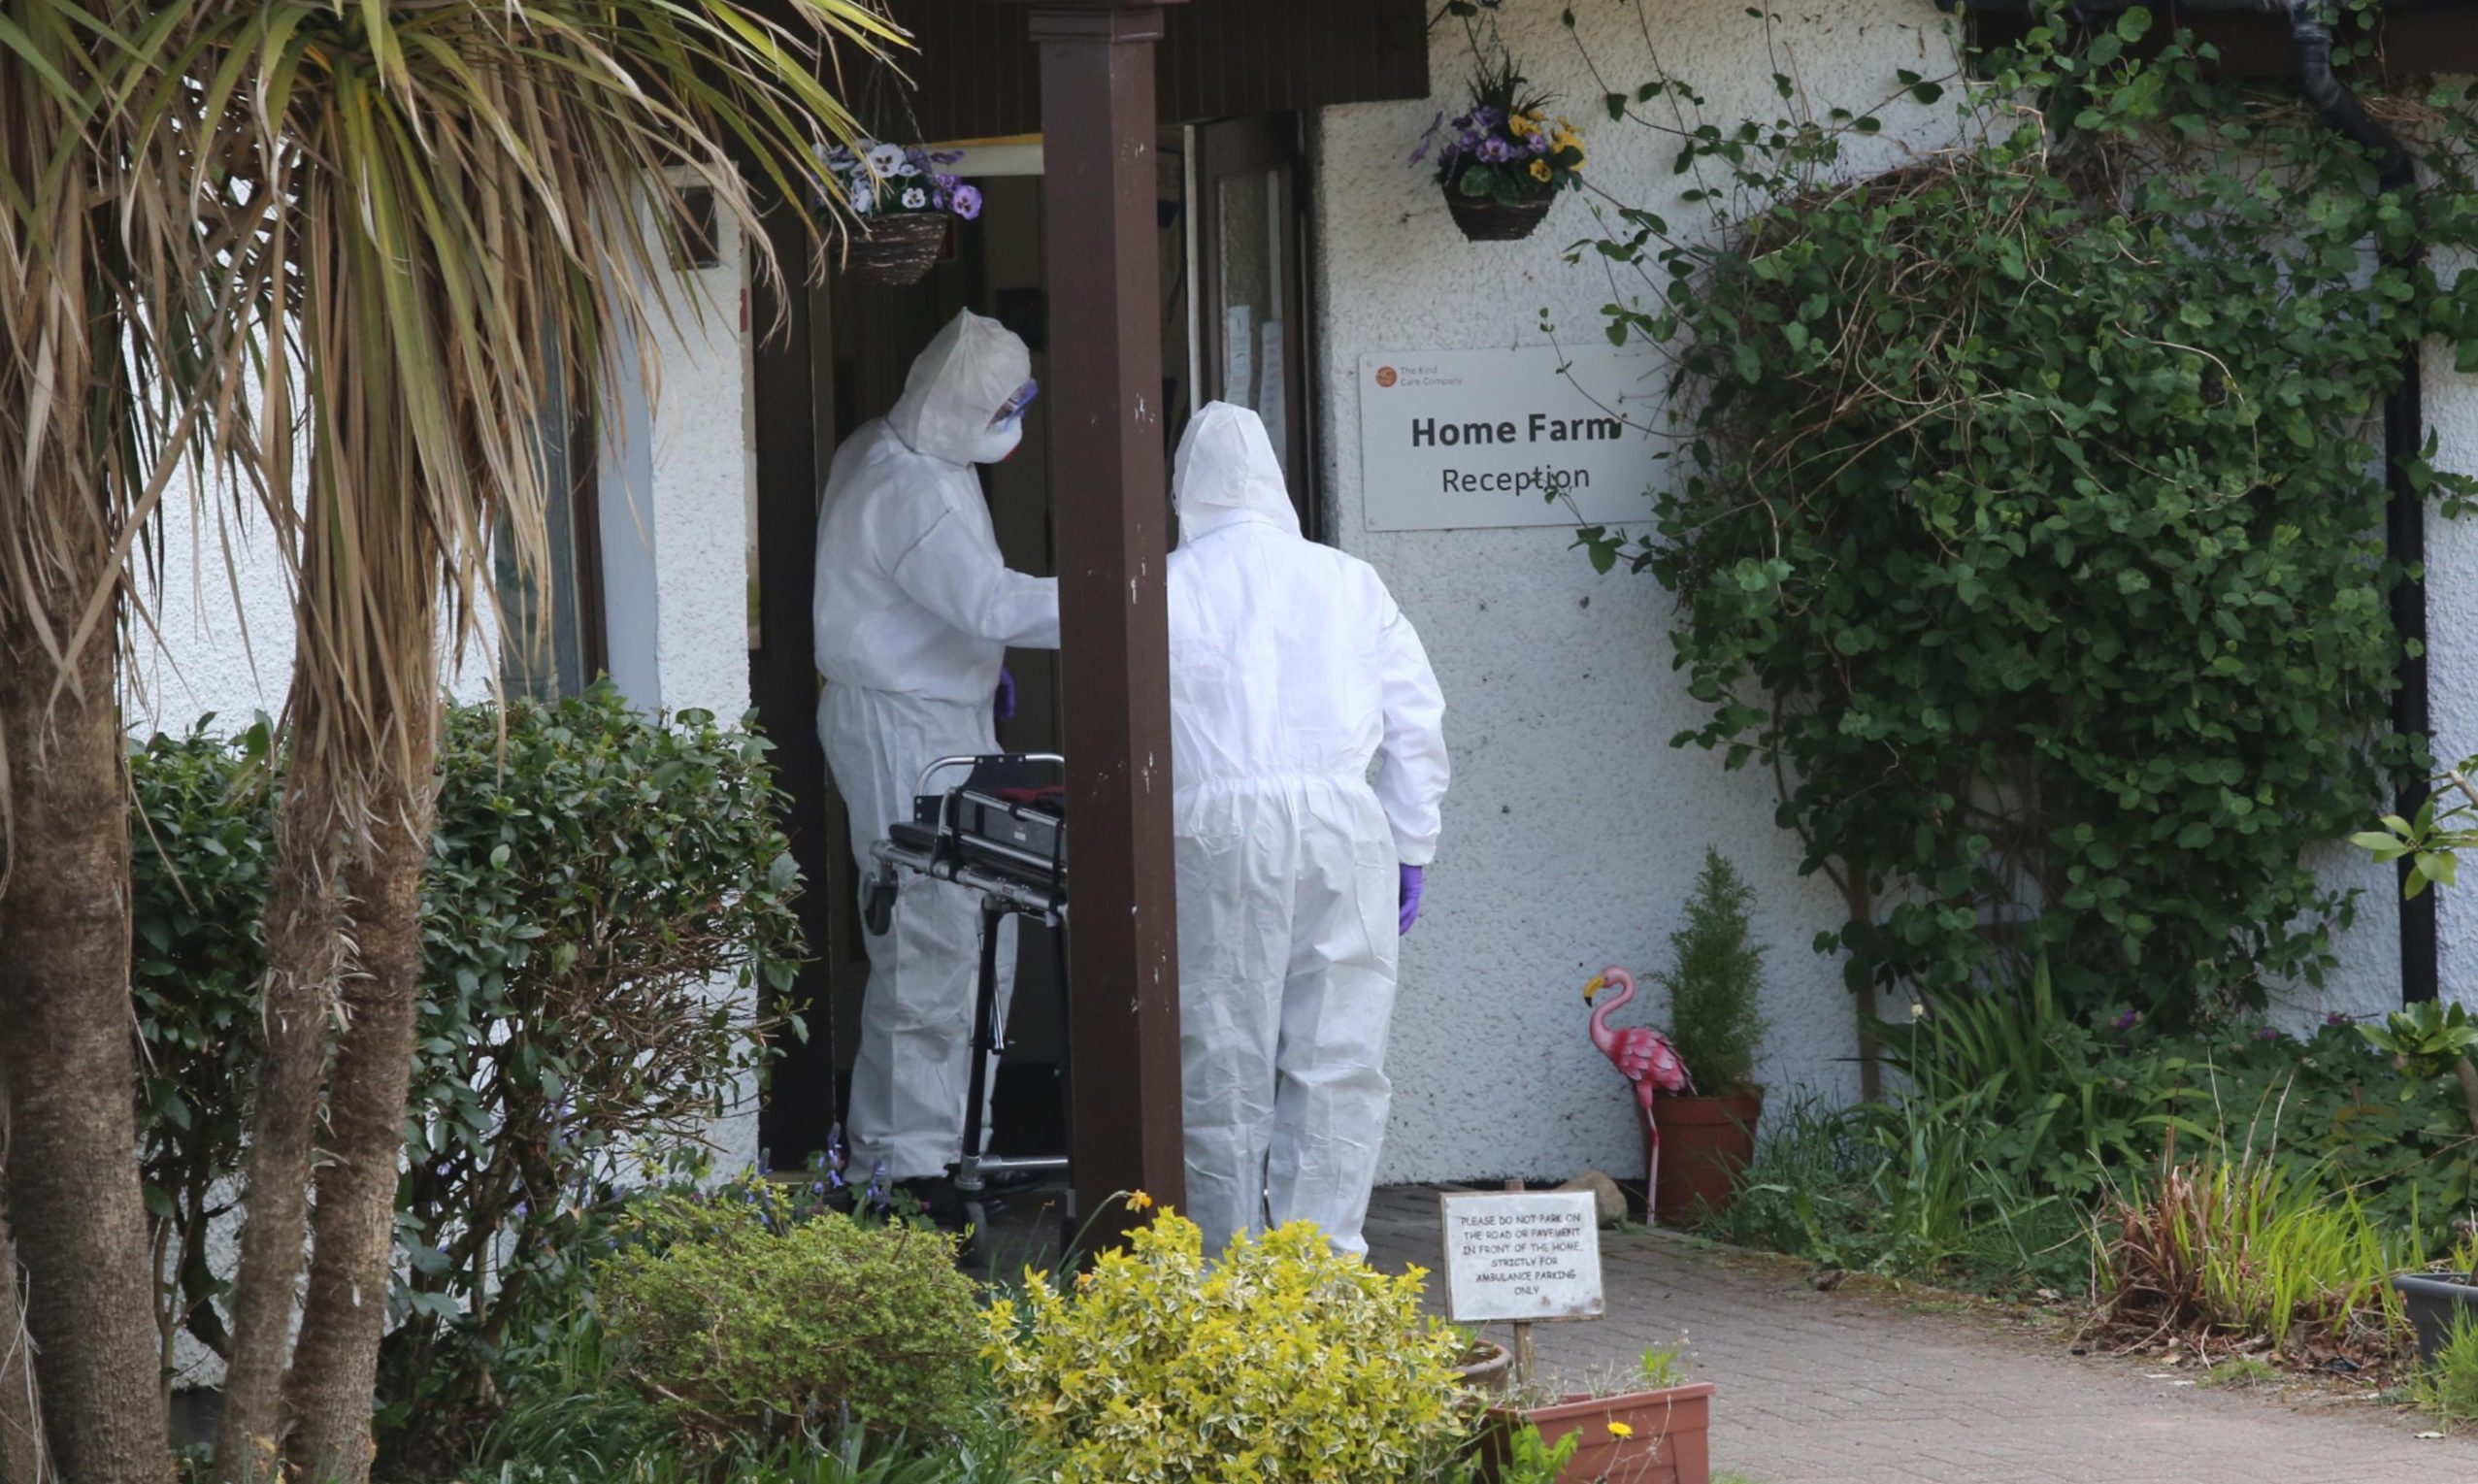 Ten people died at Home Farm care home on the Isle of Skye.